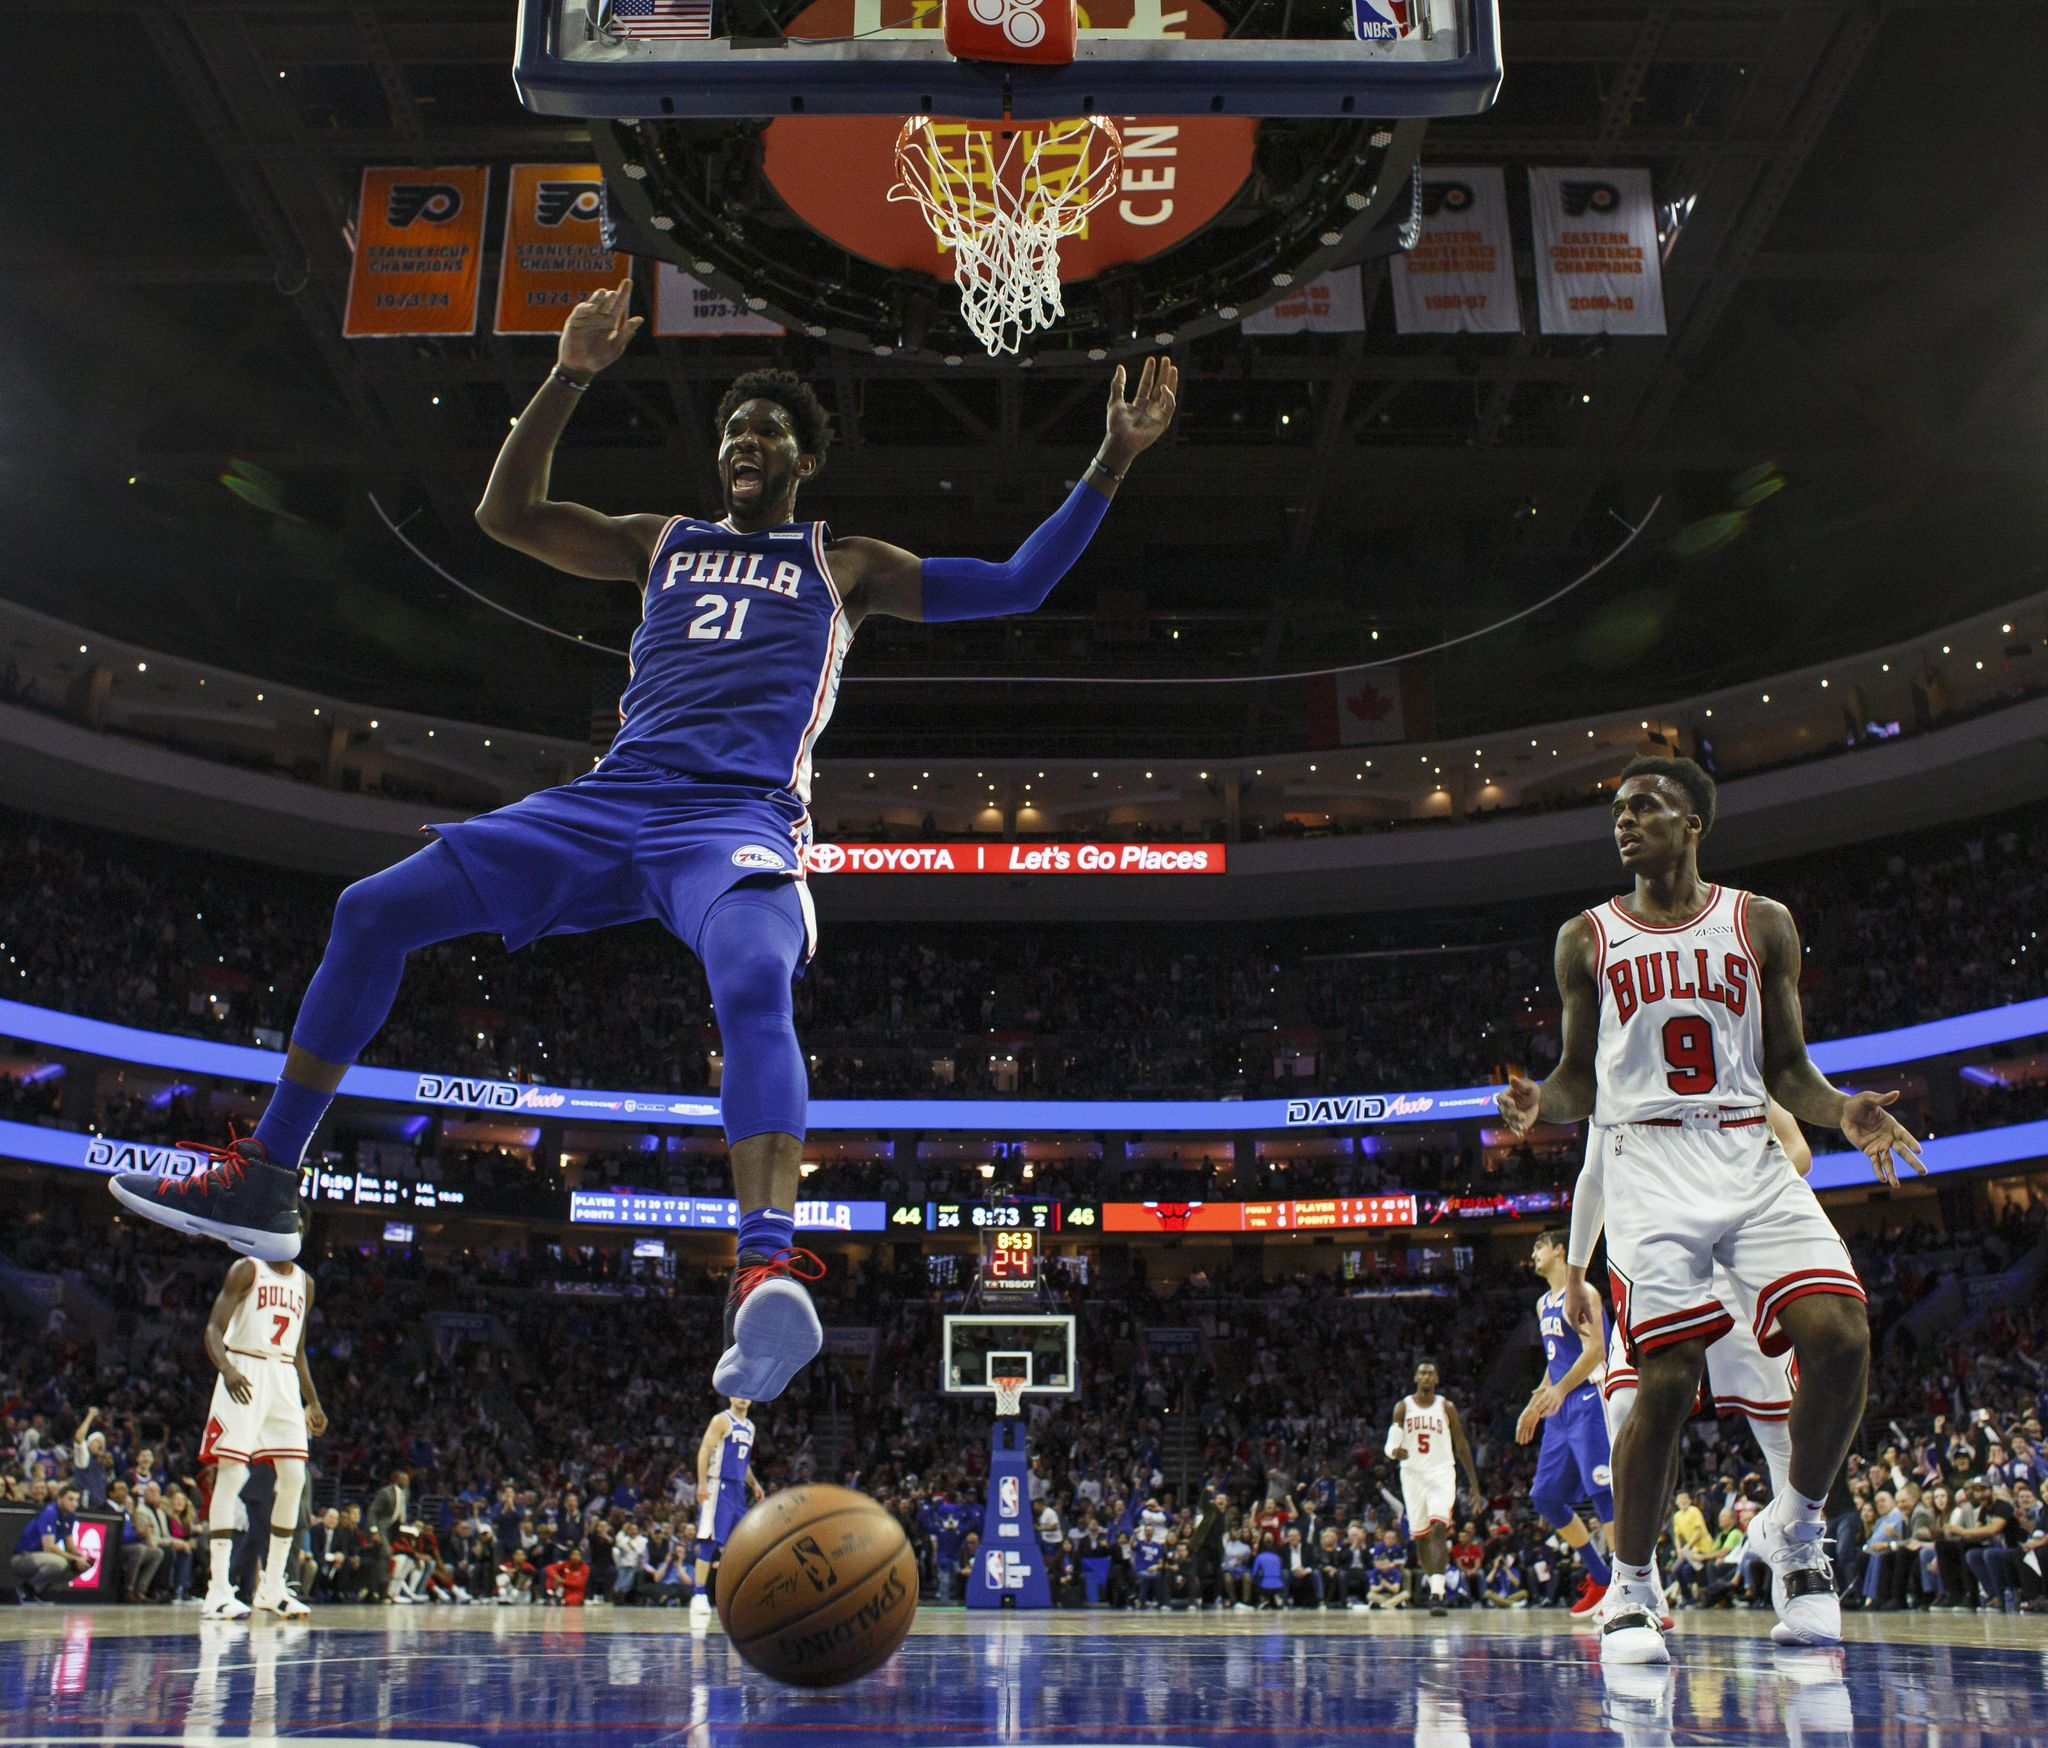 Simmons triple-double leads 76ers past Bulls 127-108 - Washington Times